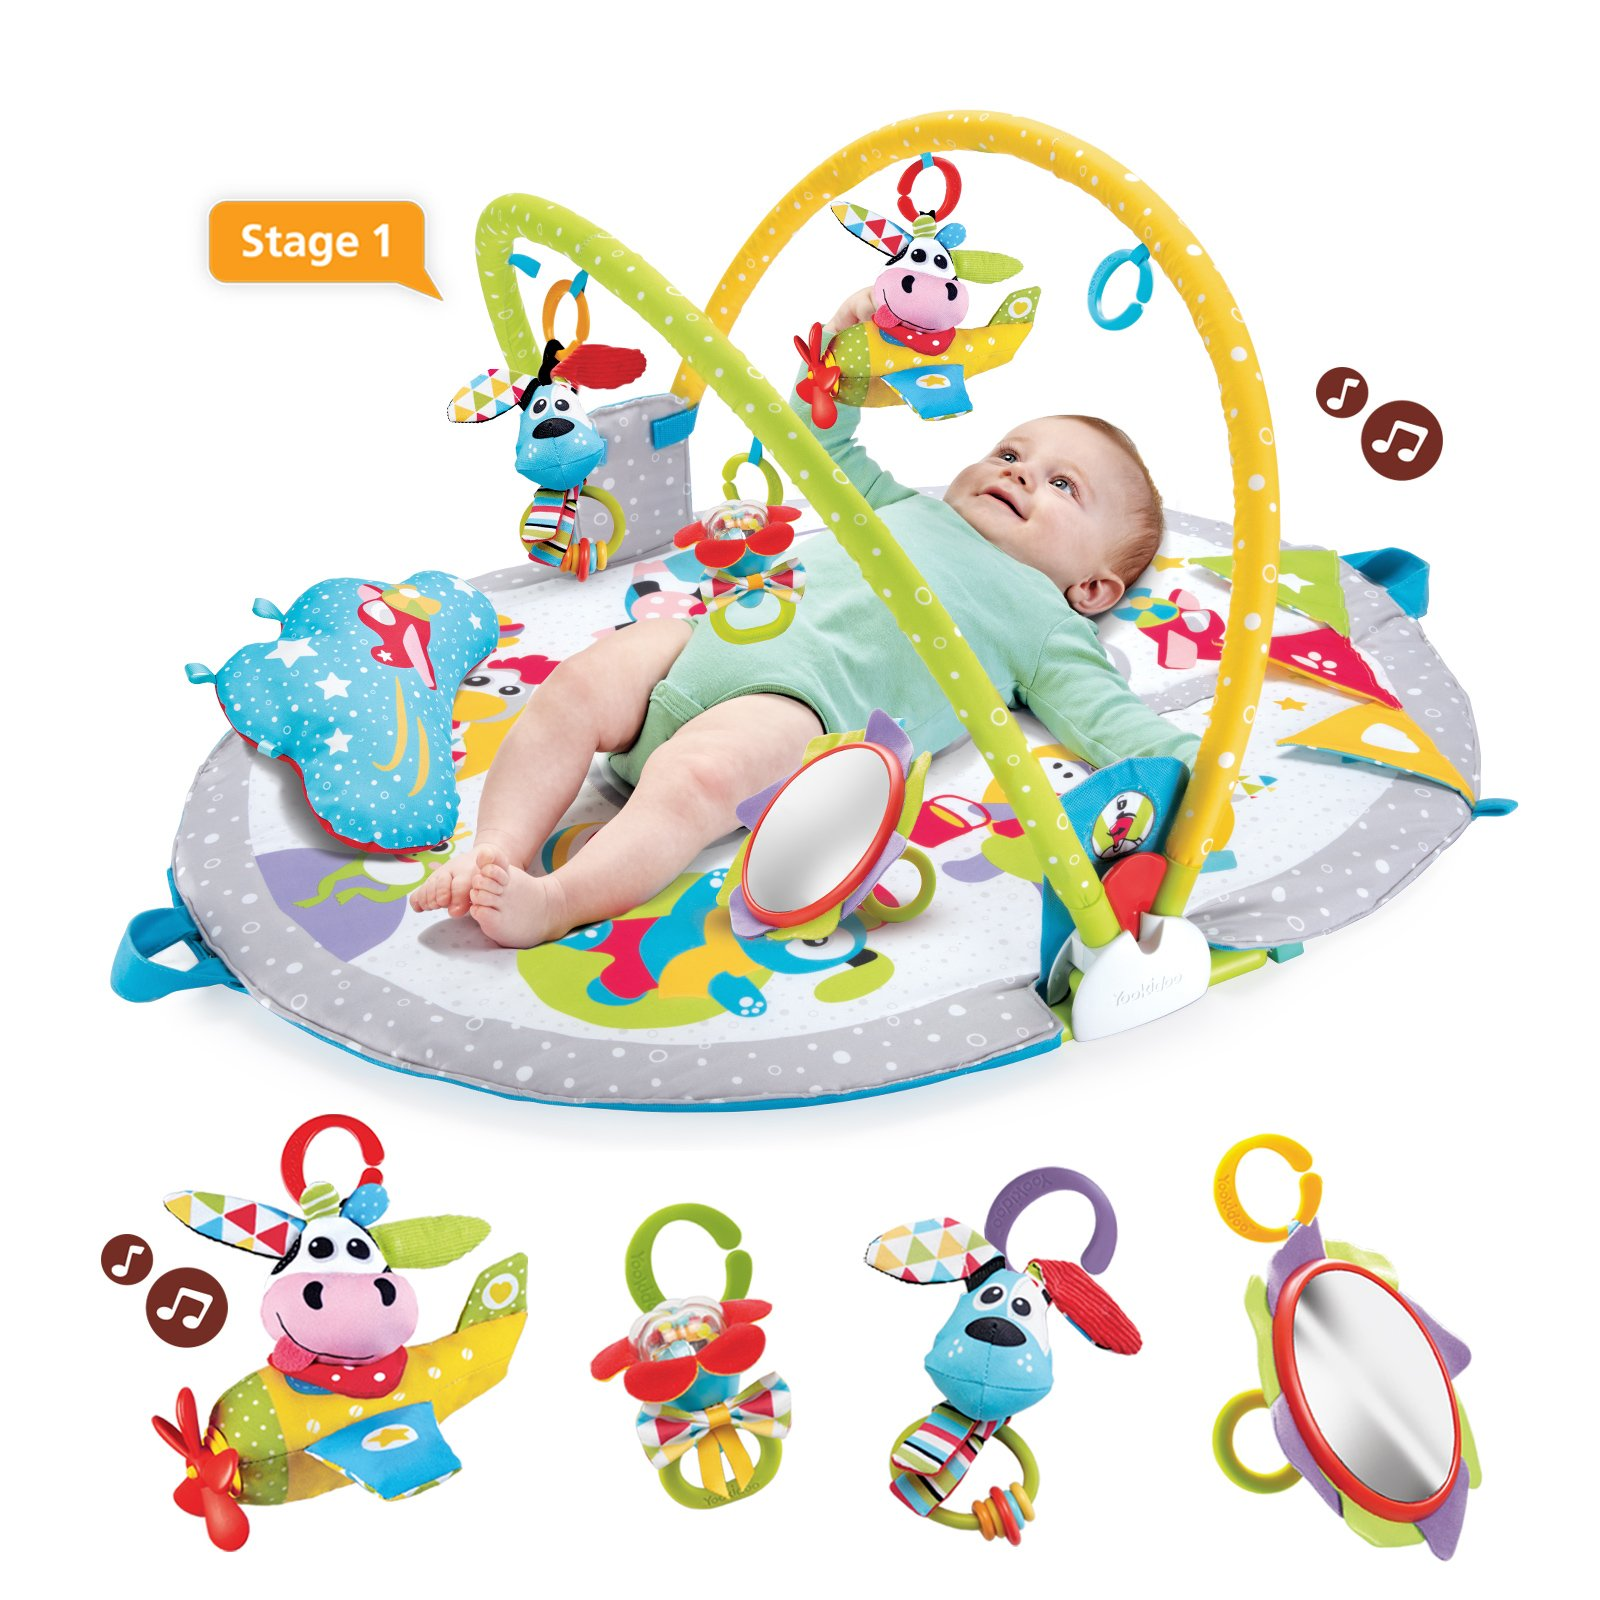 Yookidoo Gymotion Lay to Sit-Up Play Mat Infant Activity Toy for Baby 0 - 12 Month by Yookidoo (Image #3)